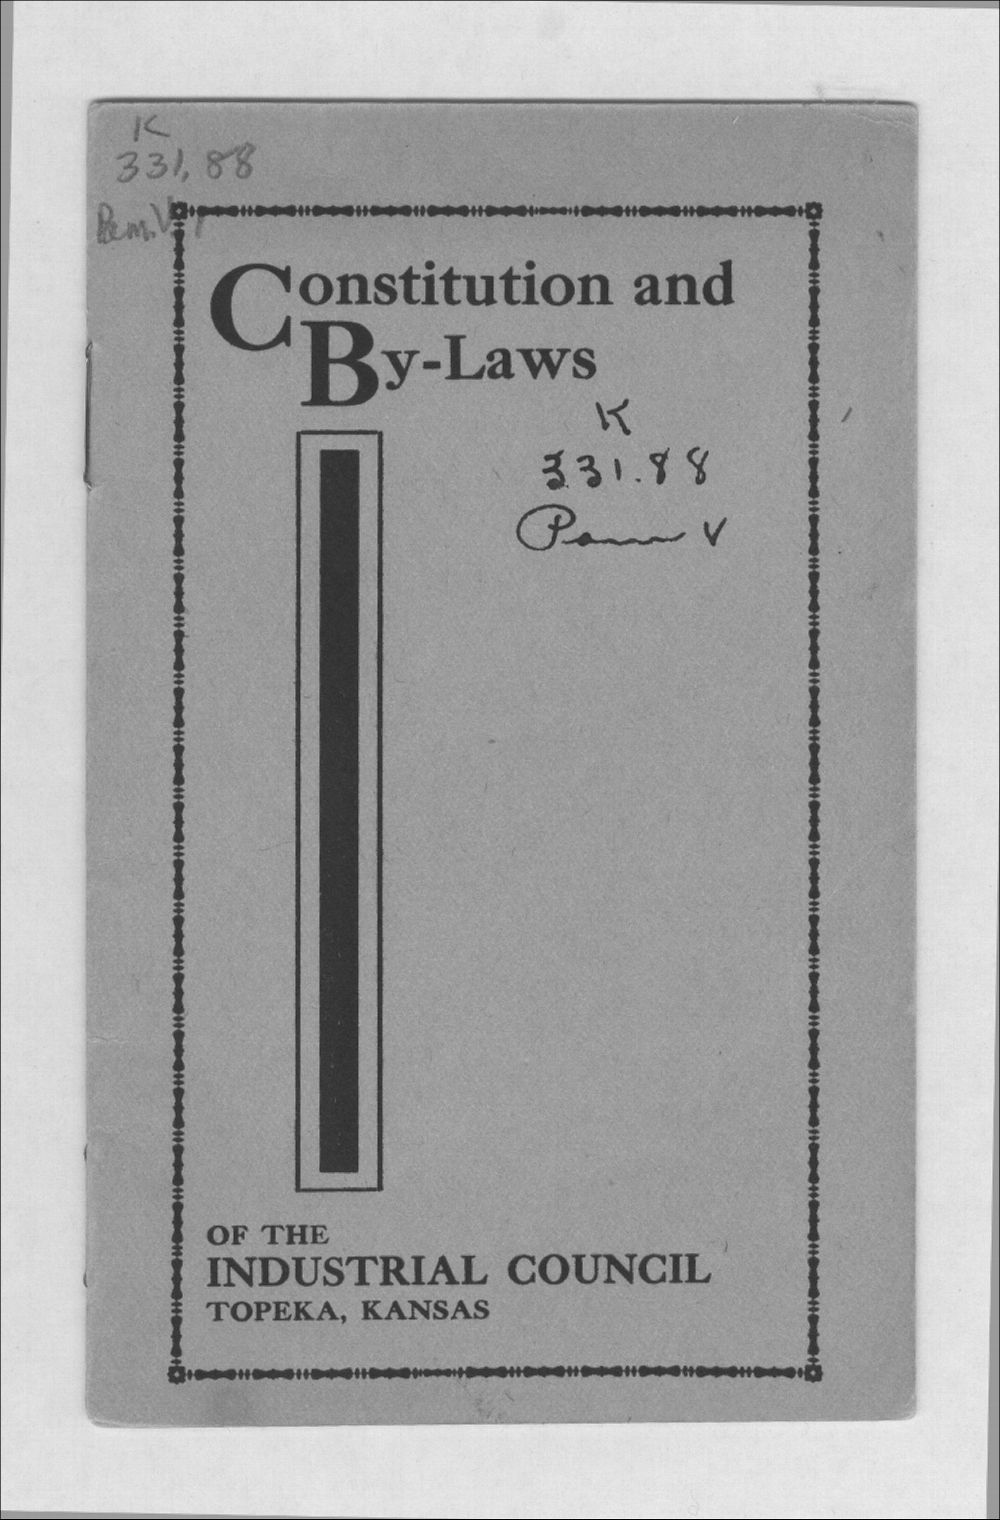 Constitution and by-laws of the Industrial Council - 1